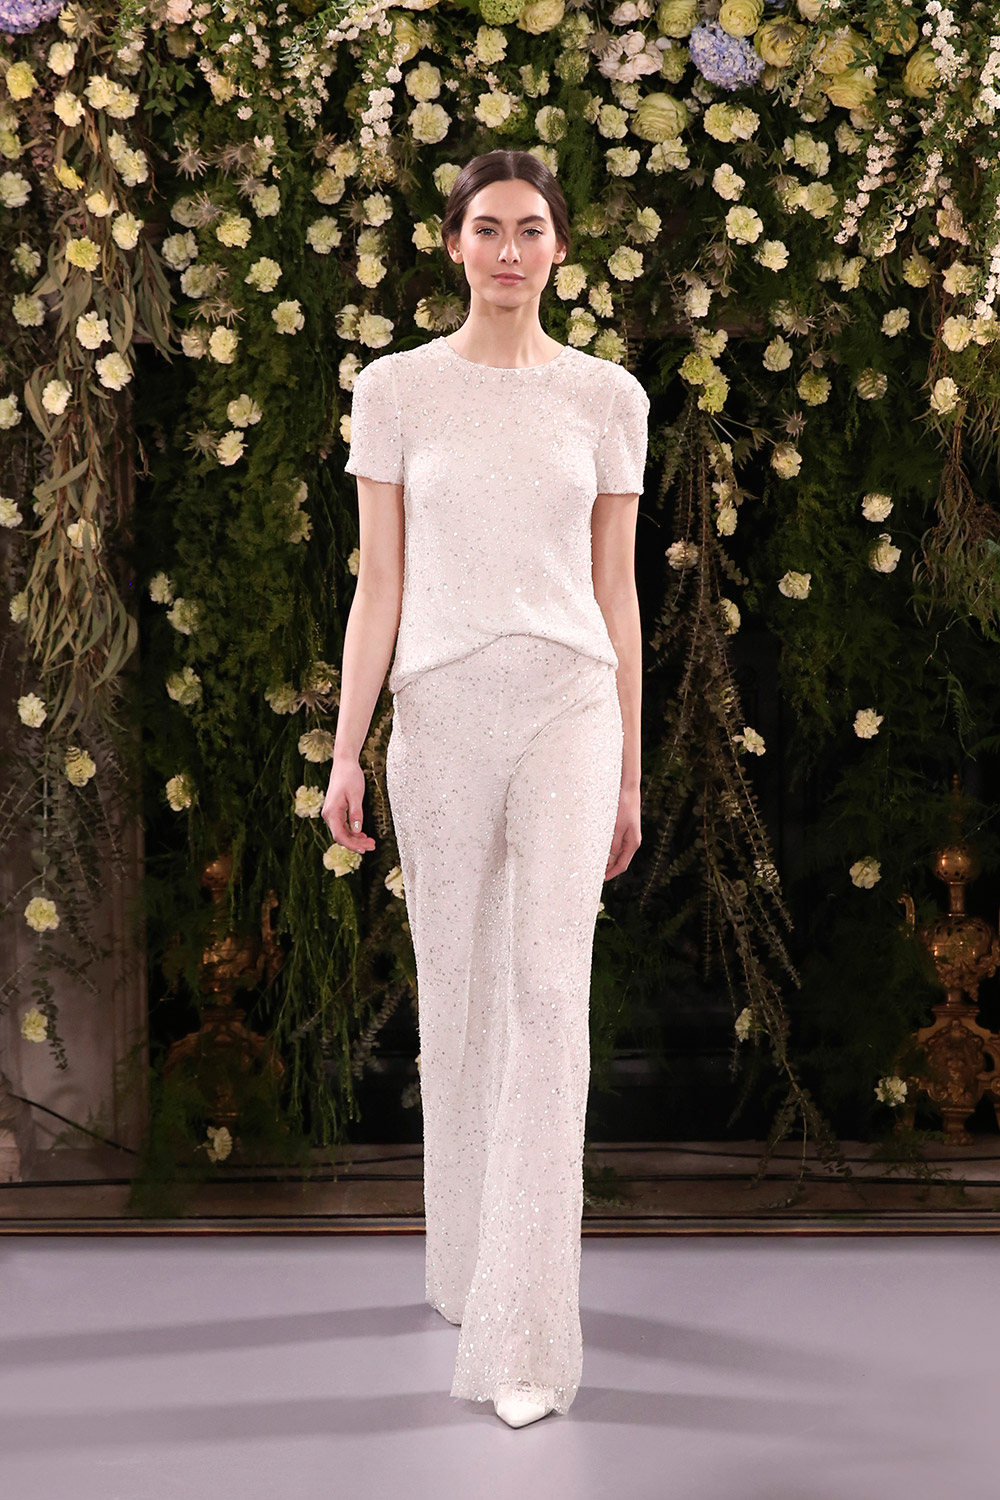 Flori and Fleur – Jenny Packham 2019 Bridal Collection. www.theweddingnotebook.com